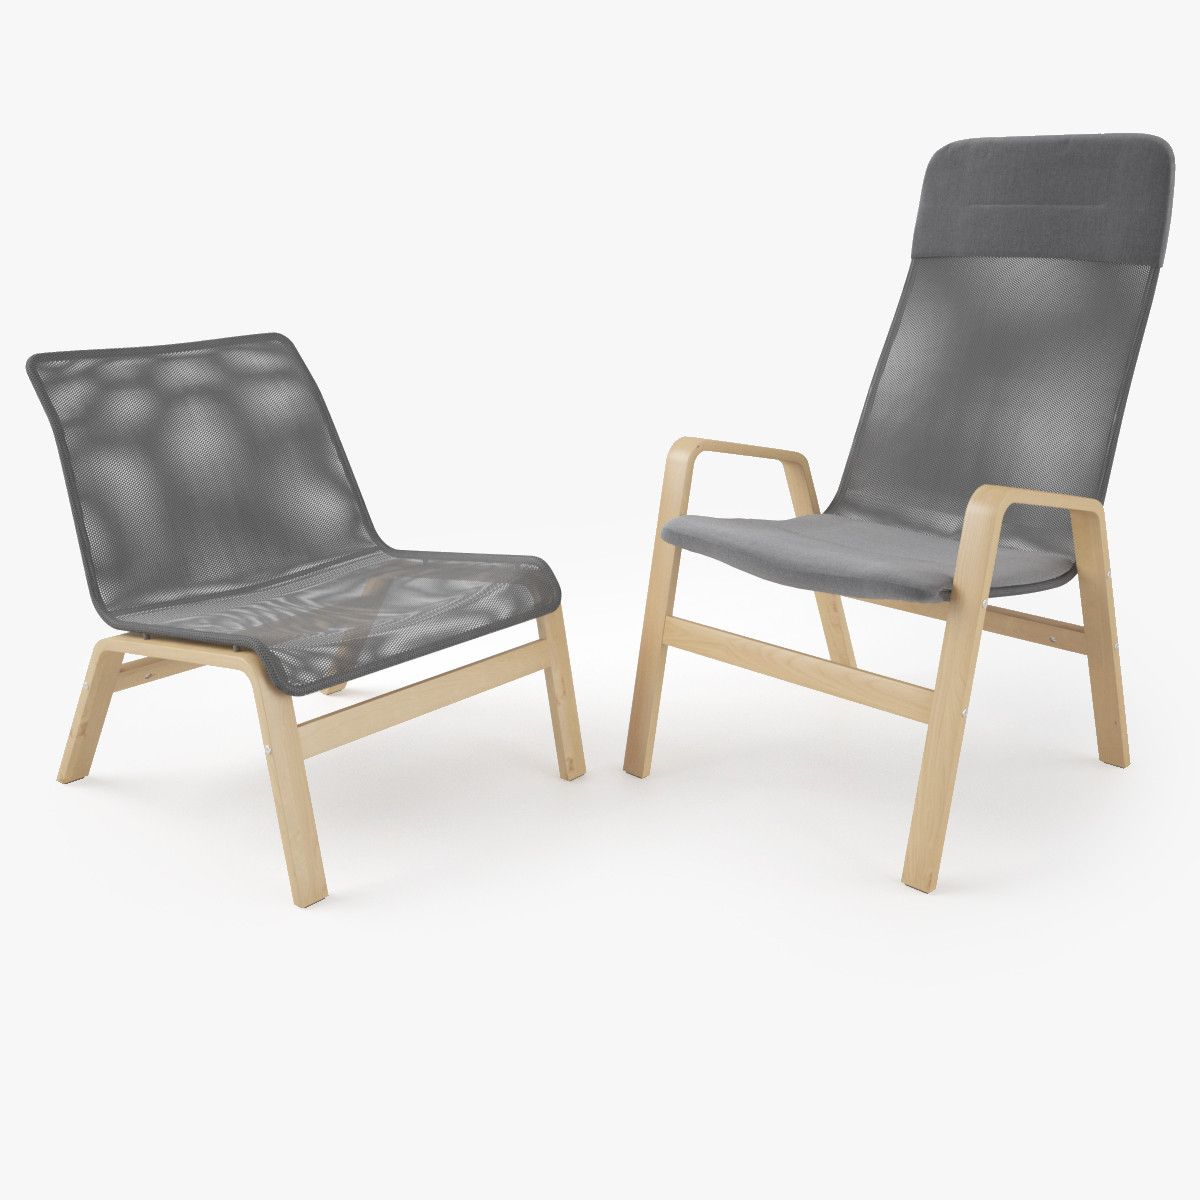 Ikea Pello Sessel 3d Ikea Nolbyn Nolmyra Armchair Model Home Armchair